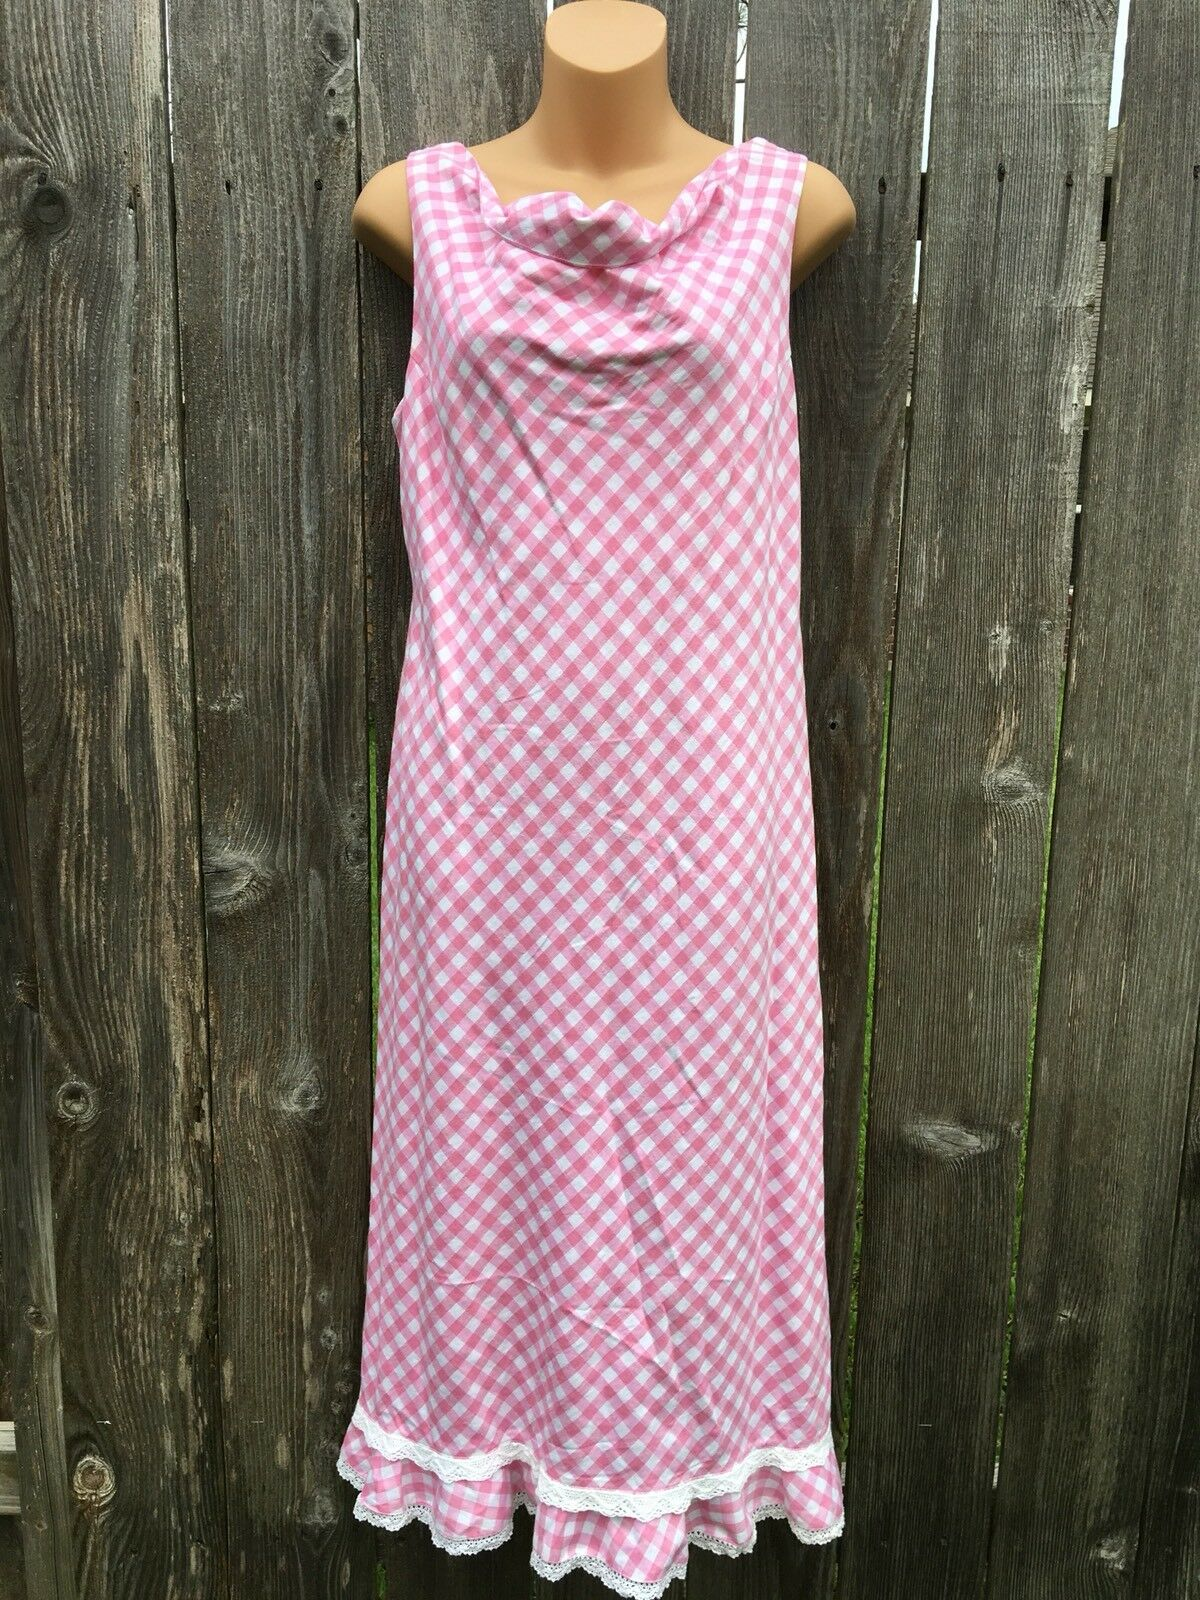 DIMENSION Women's S   42 Linen Blend Pink White Gingham Sleeveless Dress FRANCE